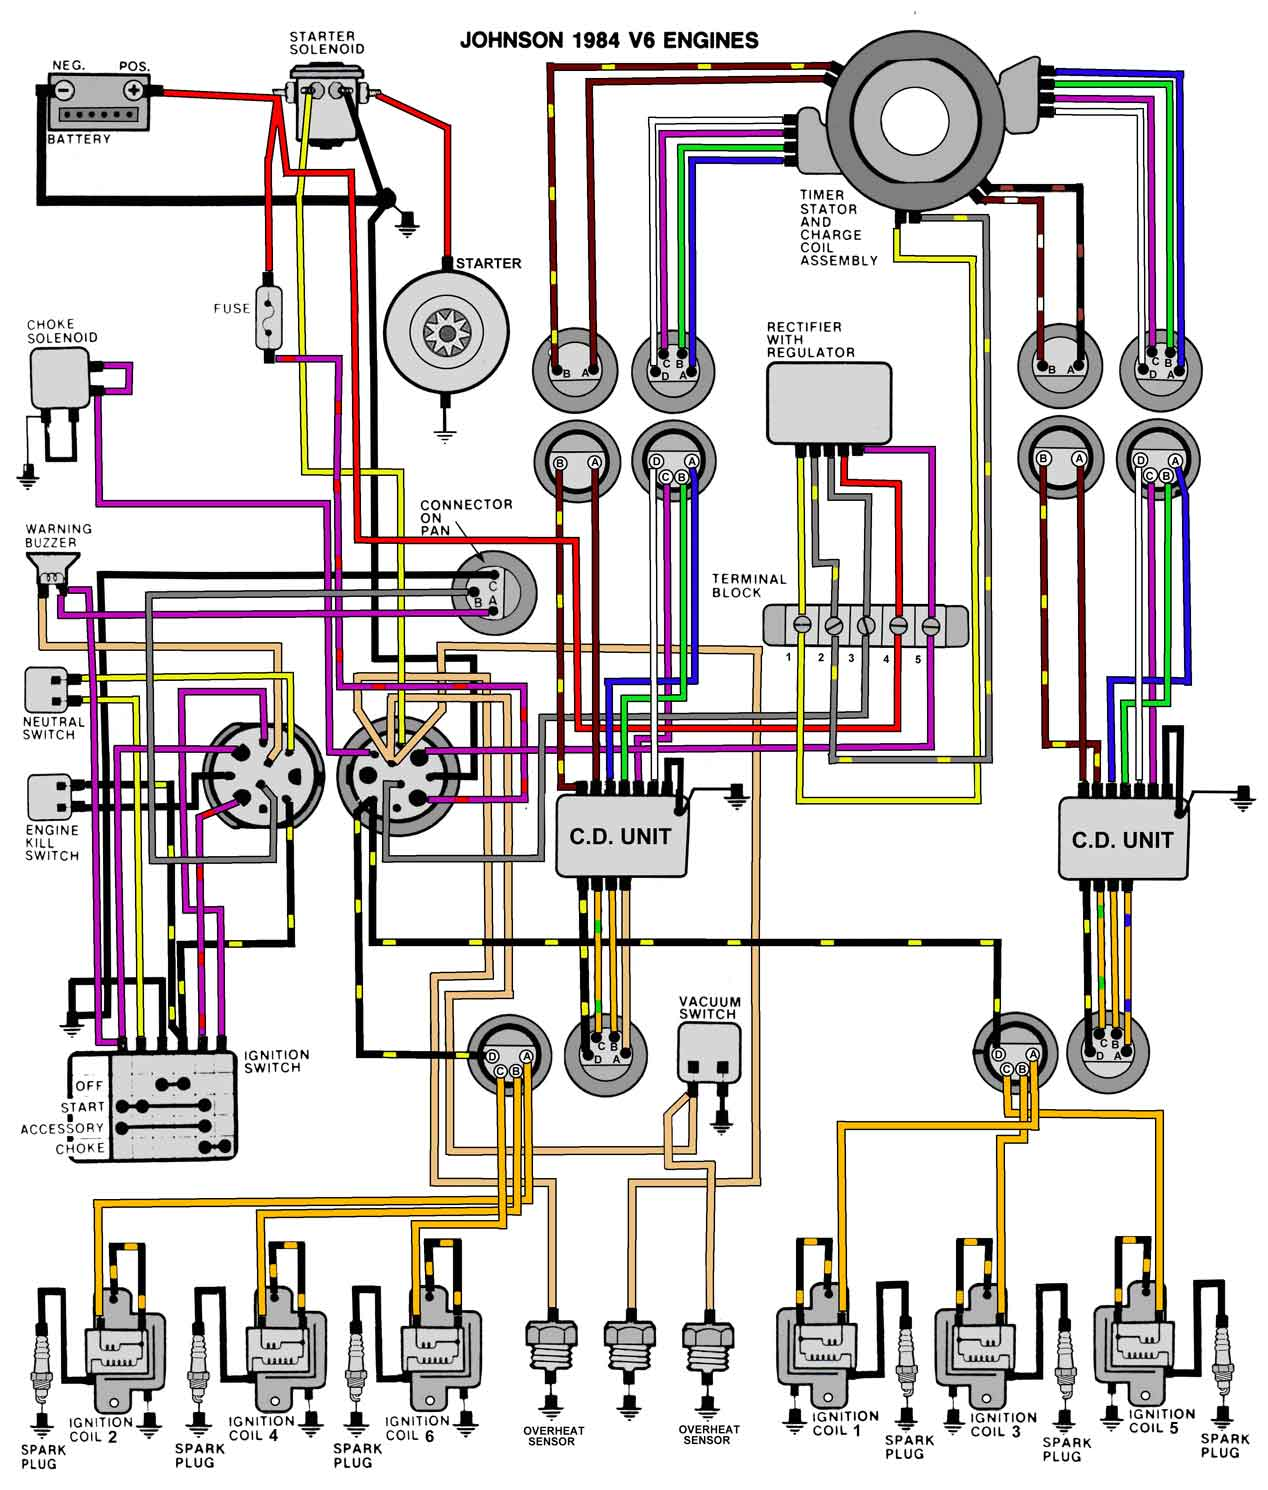 Hp Johnson Outboard Wiring Diagram On Typical Motor Starter ... on